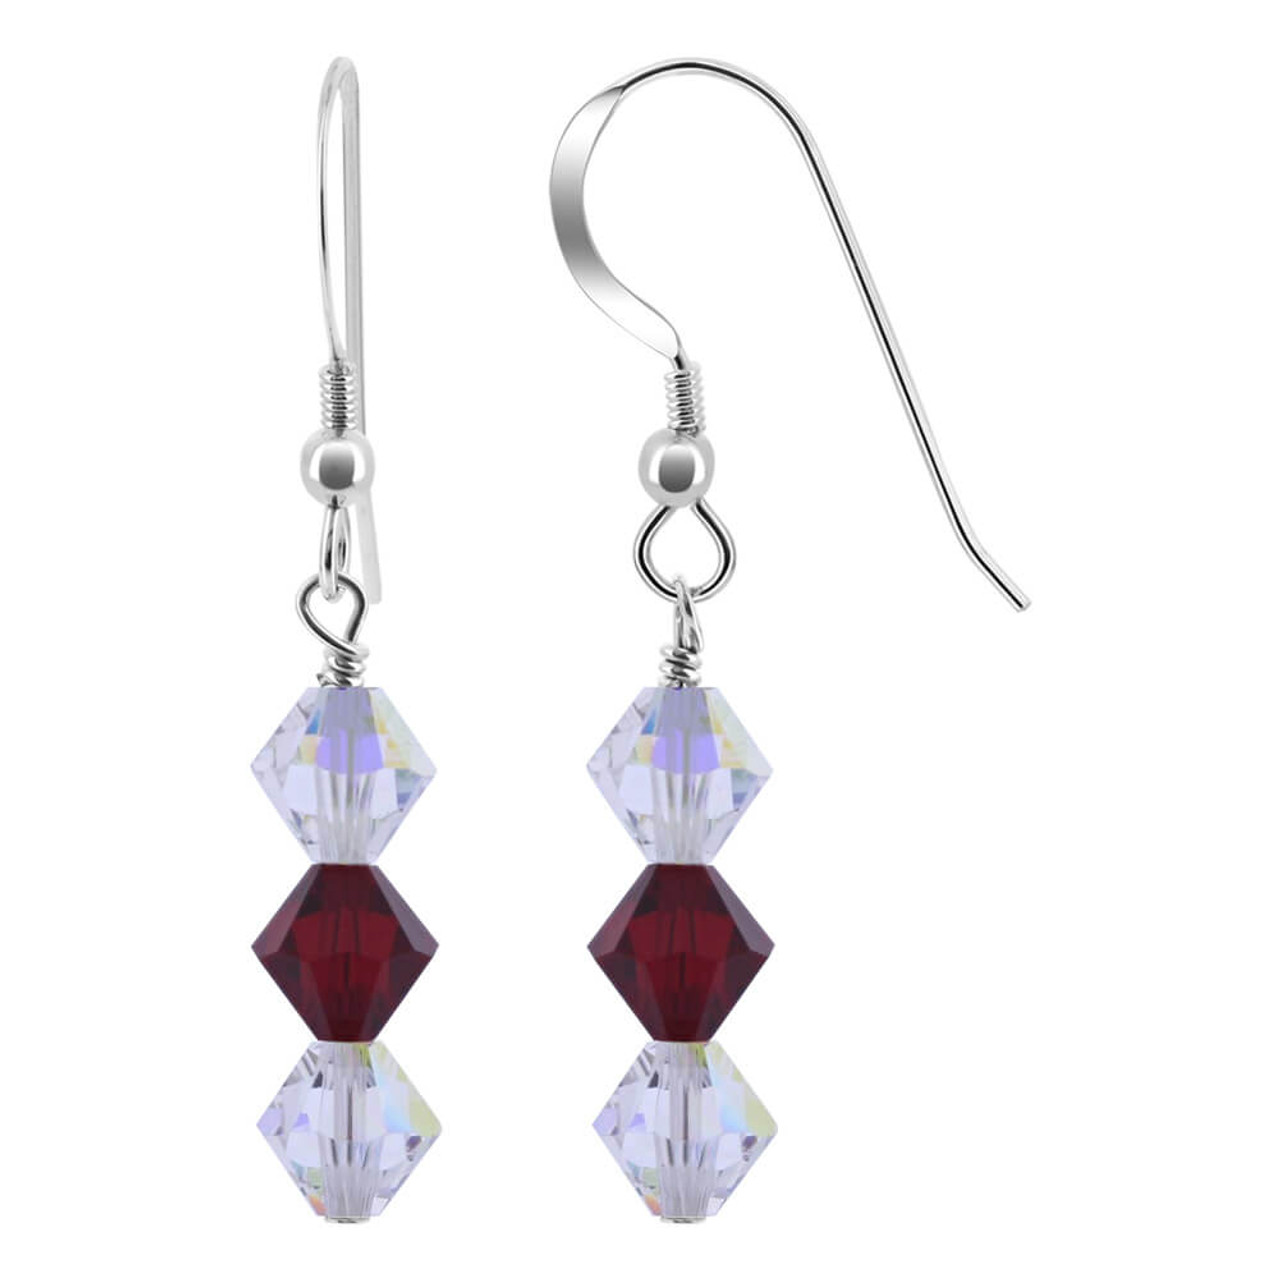 786862ca227a6 Sterling Silver Made with Swarovski Elements Clear AB and Garnet Color  Bicone Crystal Drop Earrings